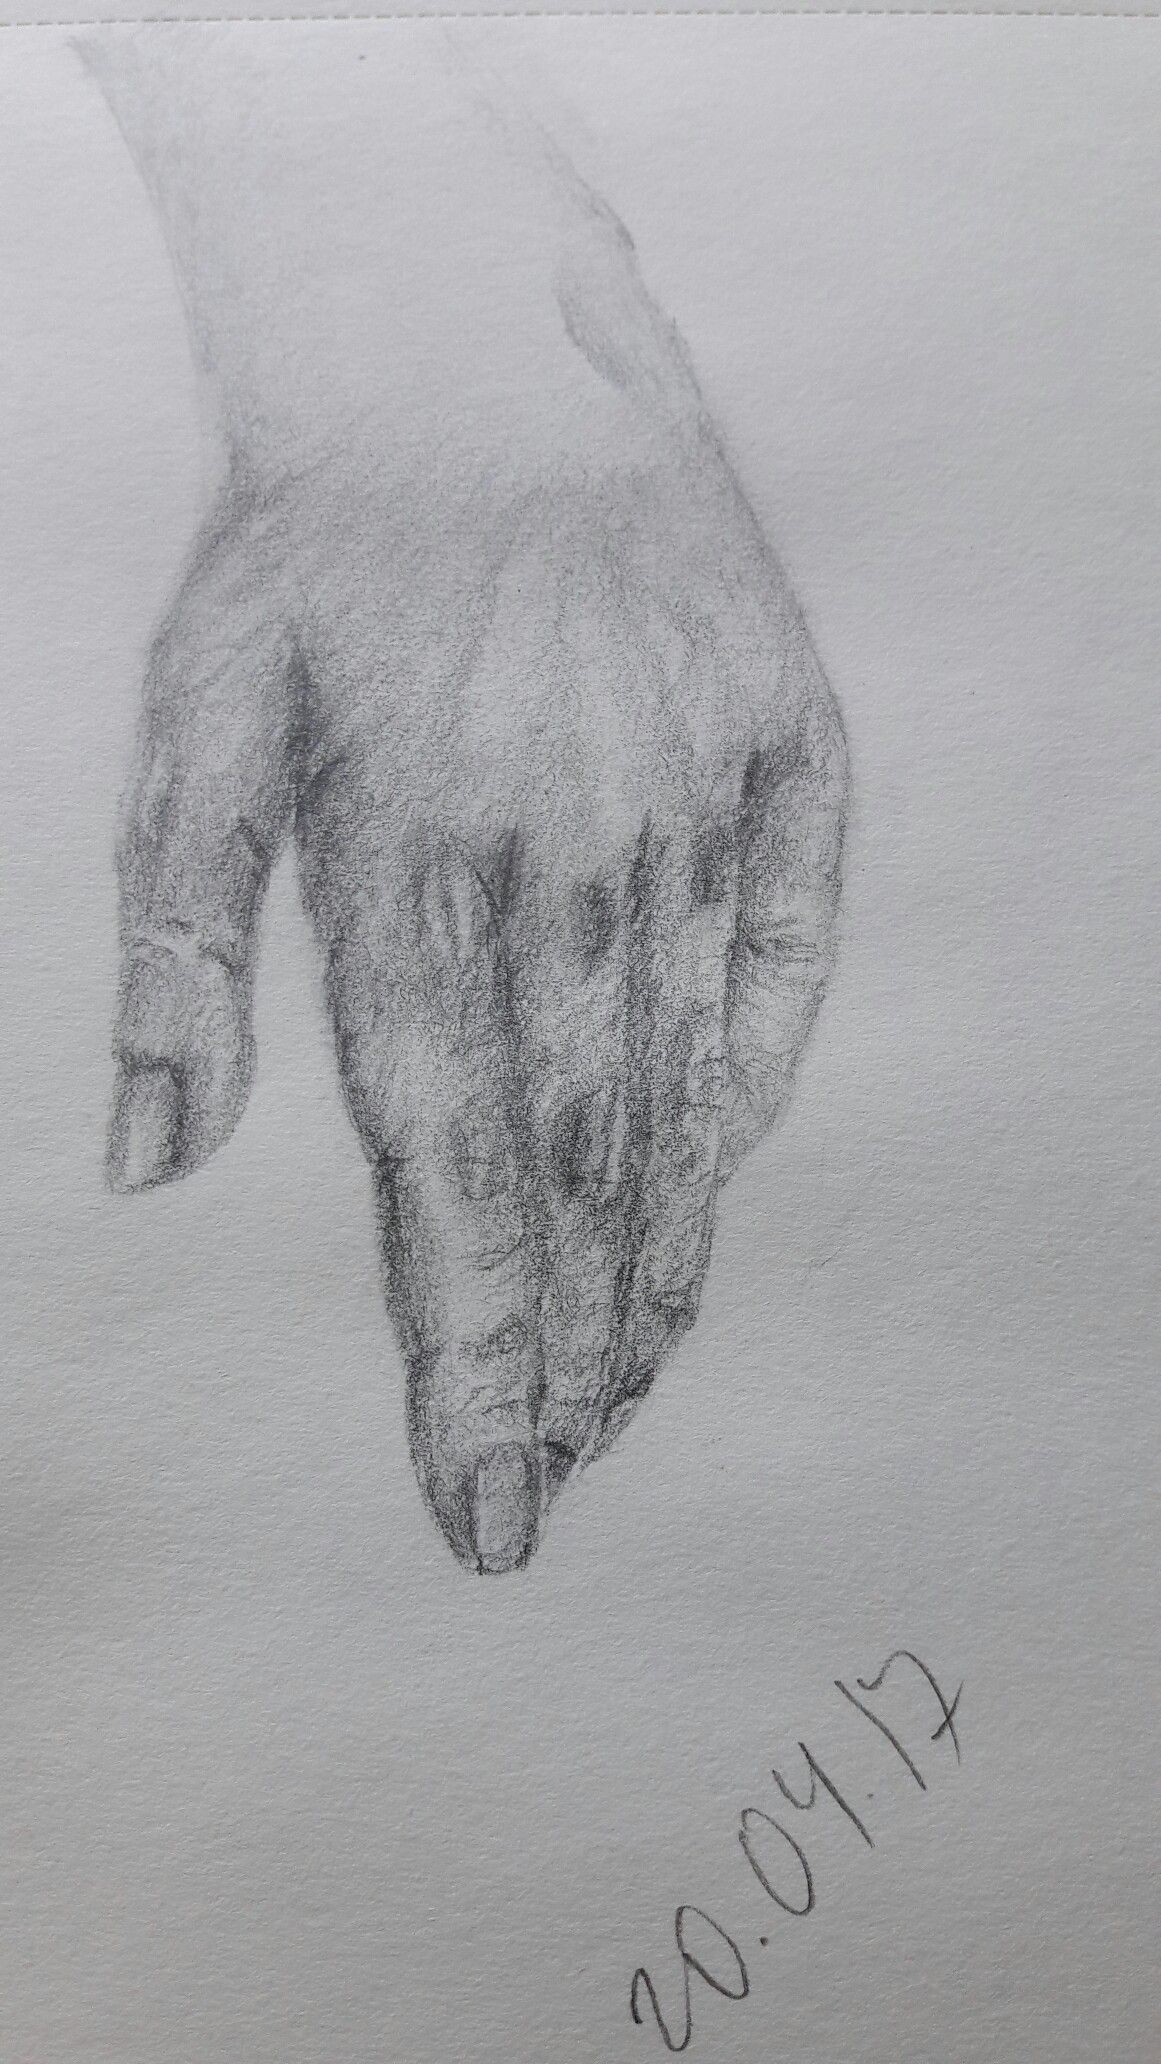 My trials, sketches & drawings of hands | Human anatomy drawing ...